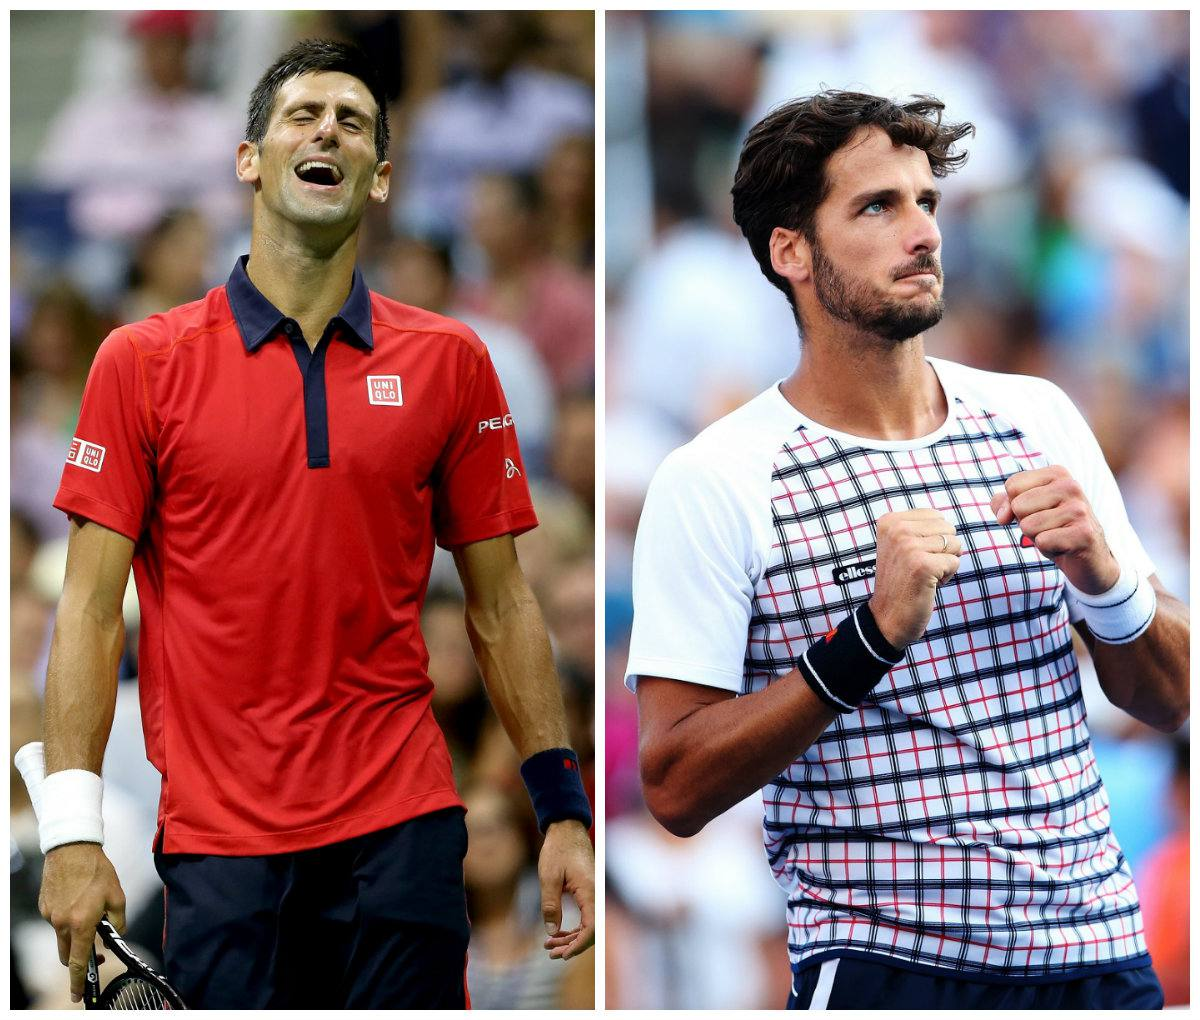 Novak Djokovic vs Feliciano Lopez in diretta tv streaming gratis tennis rojadirecta.